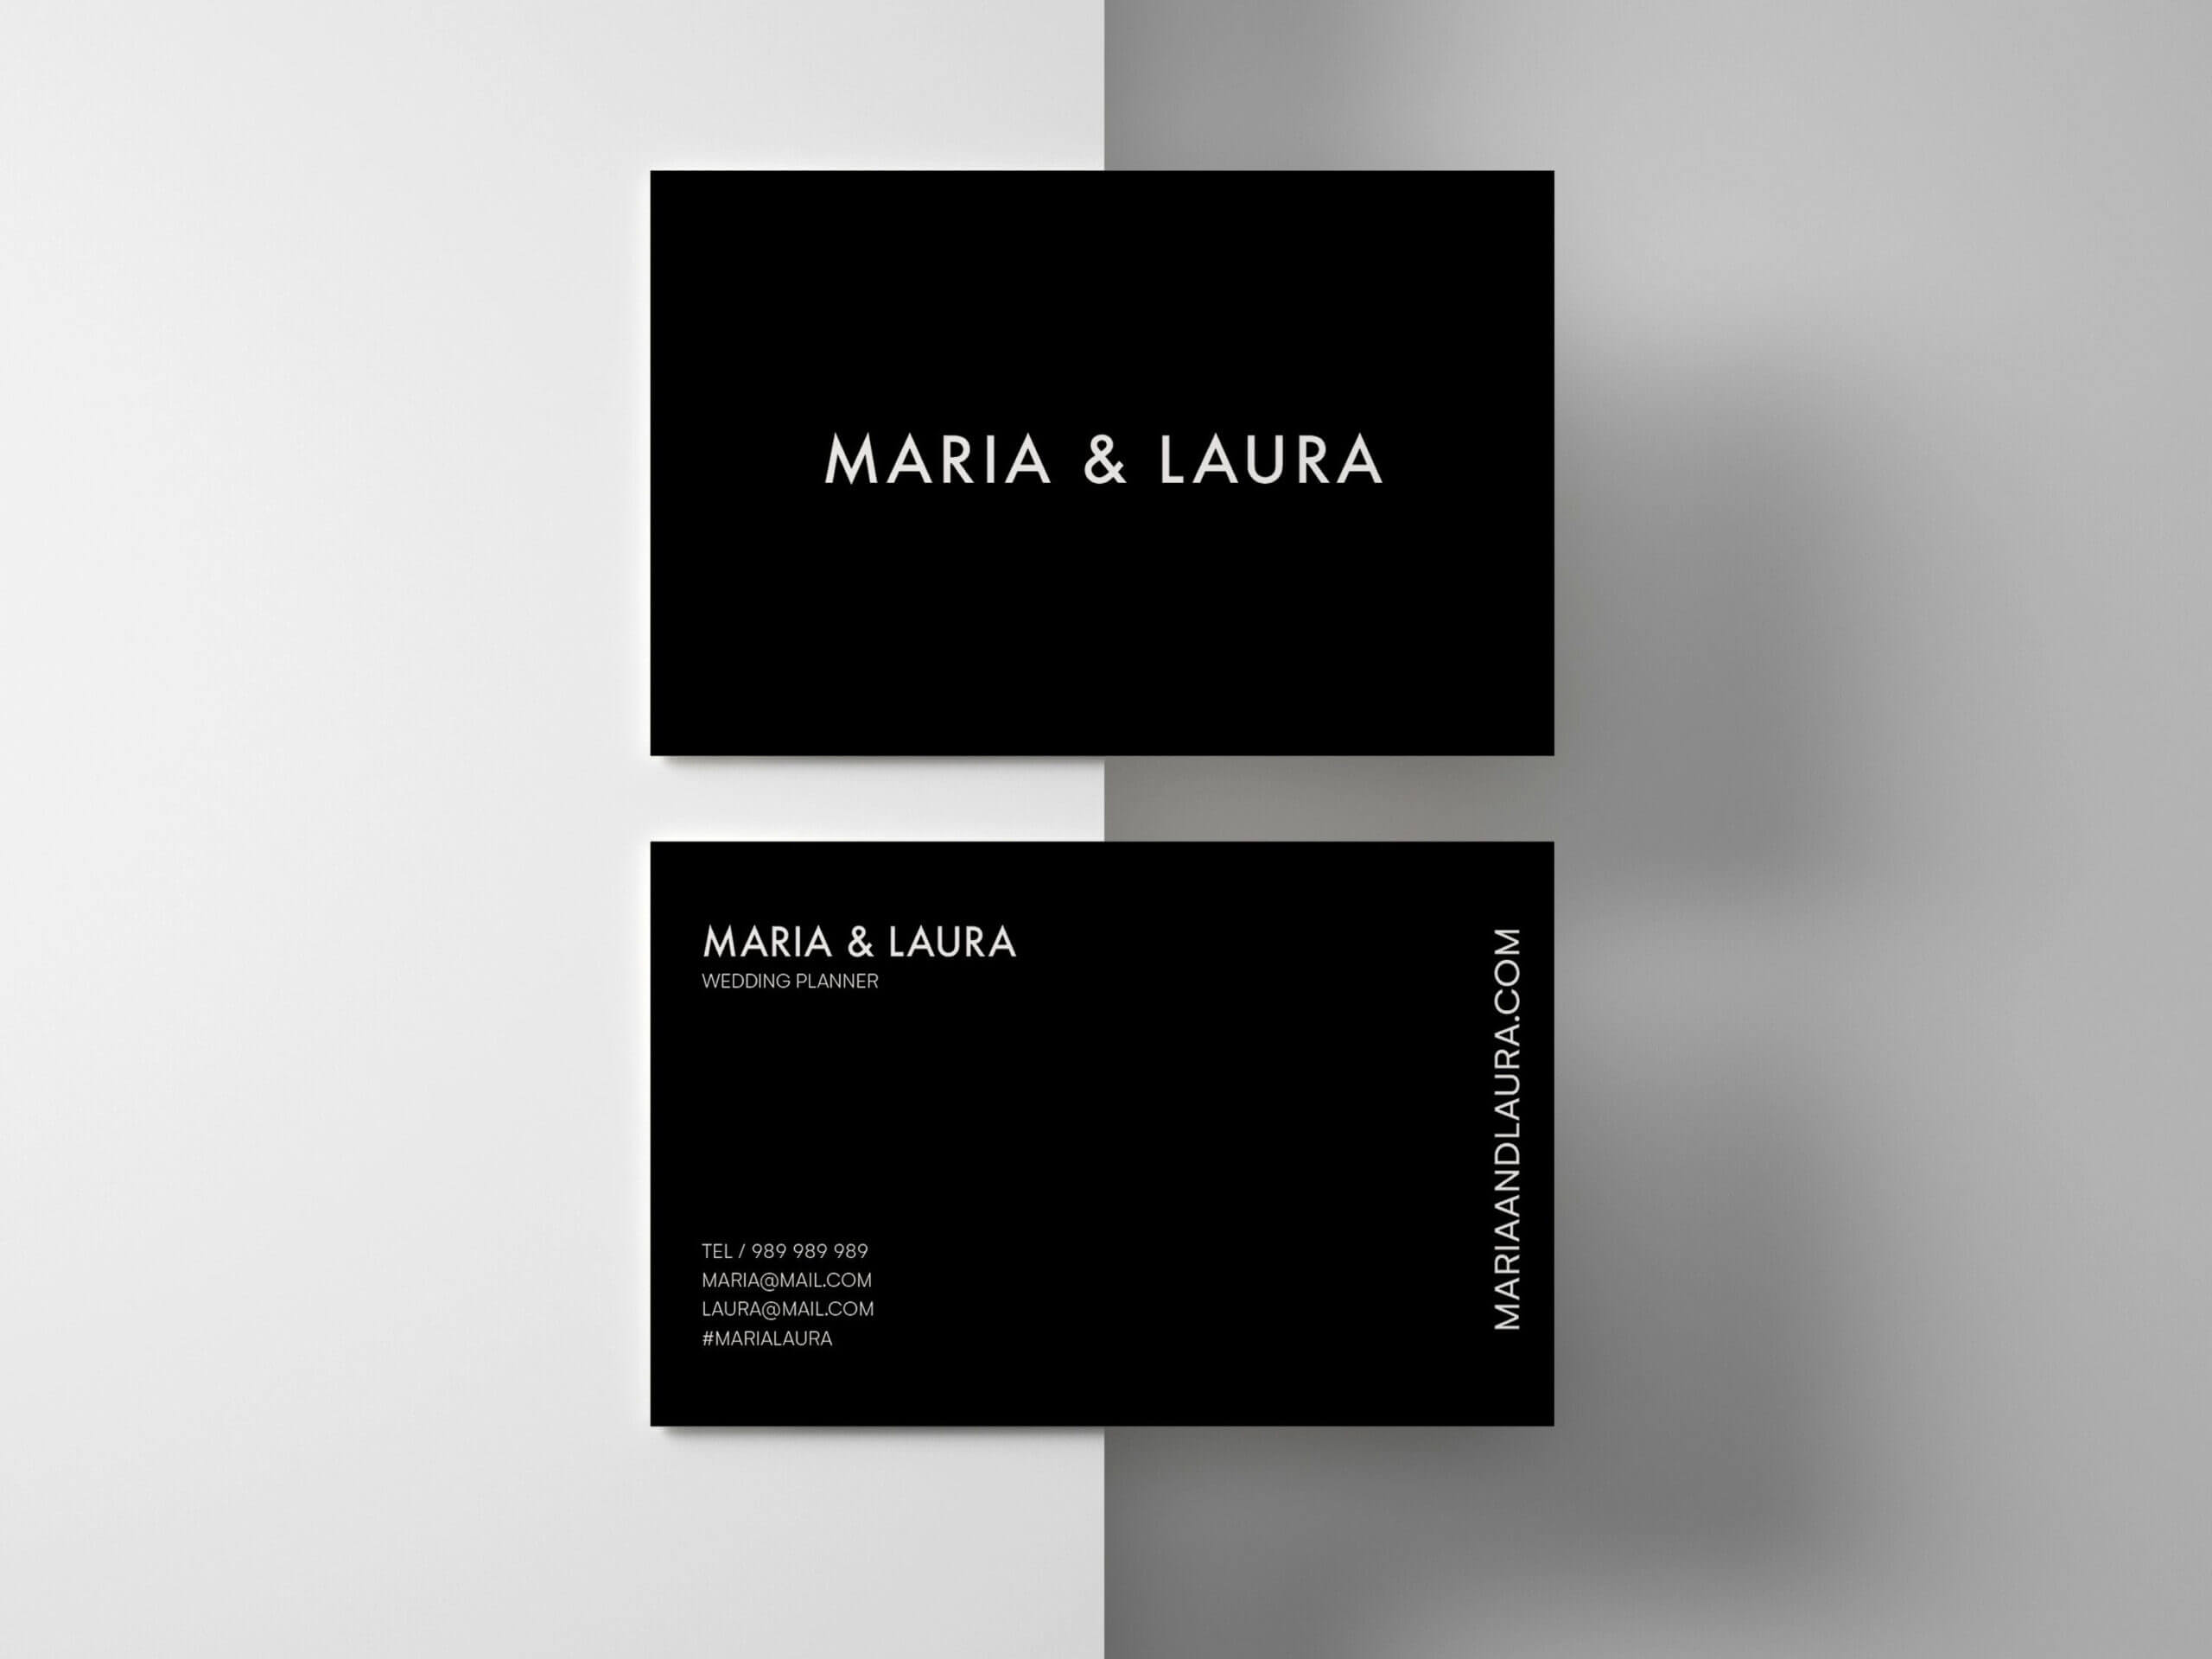 Business Cards, Calling Cards, Business Card, Templates Within Call Card Templates